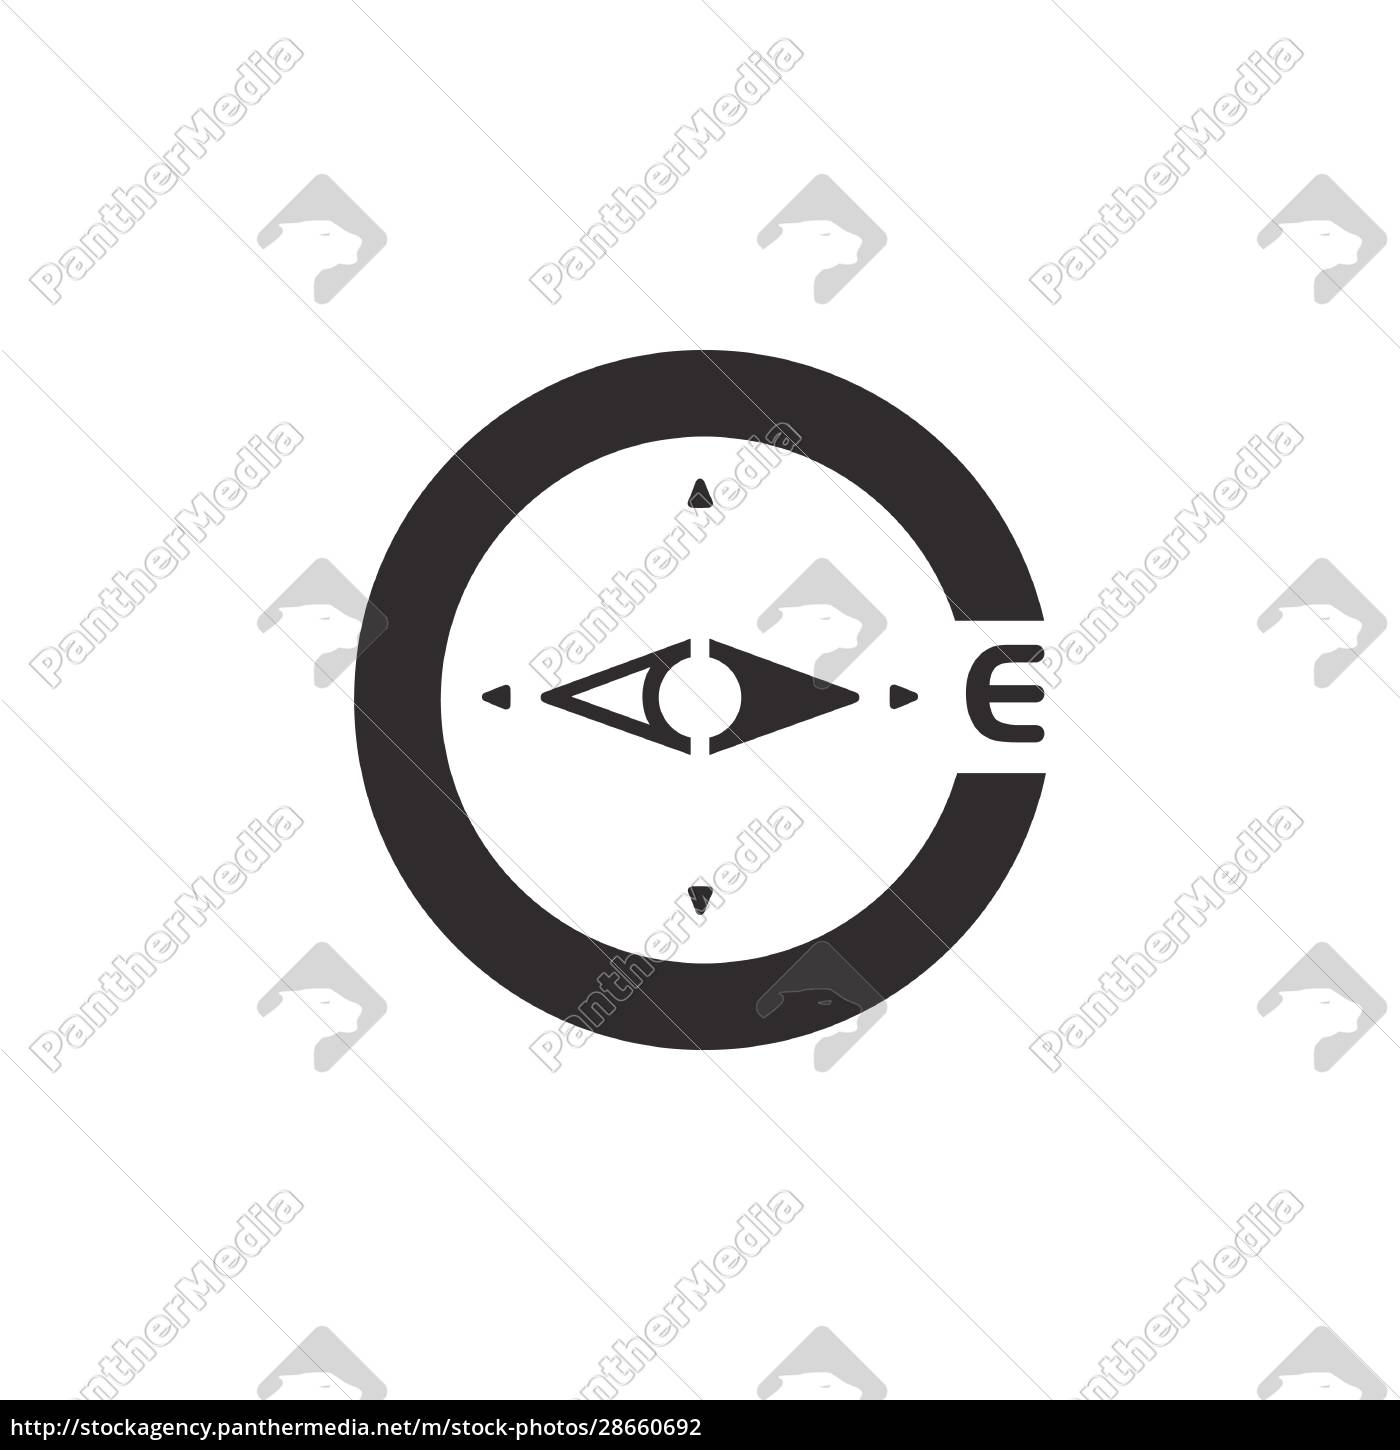 compass., east, direction., icon., weather, glyph - 28660692